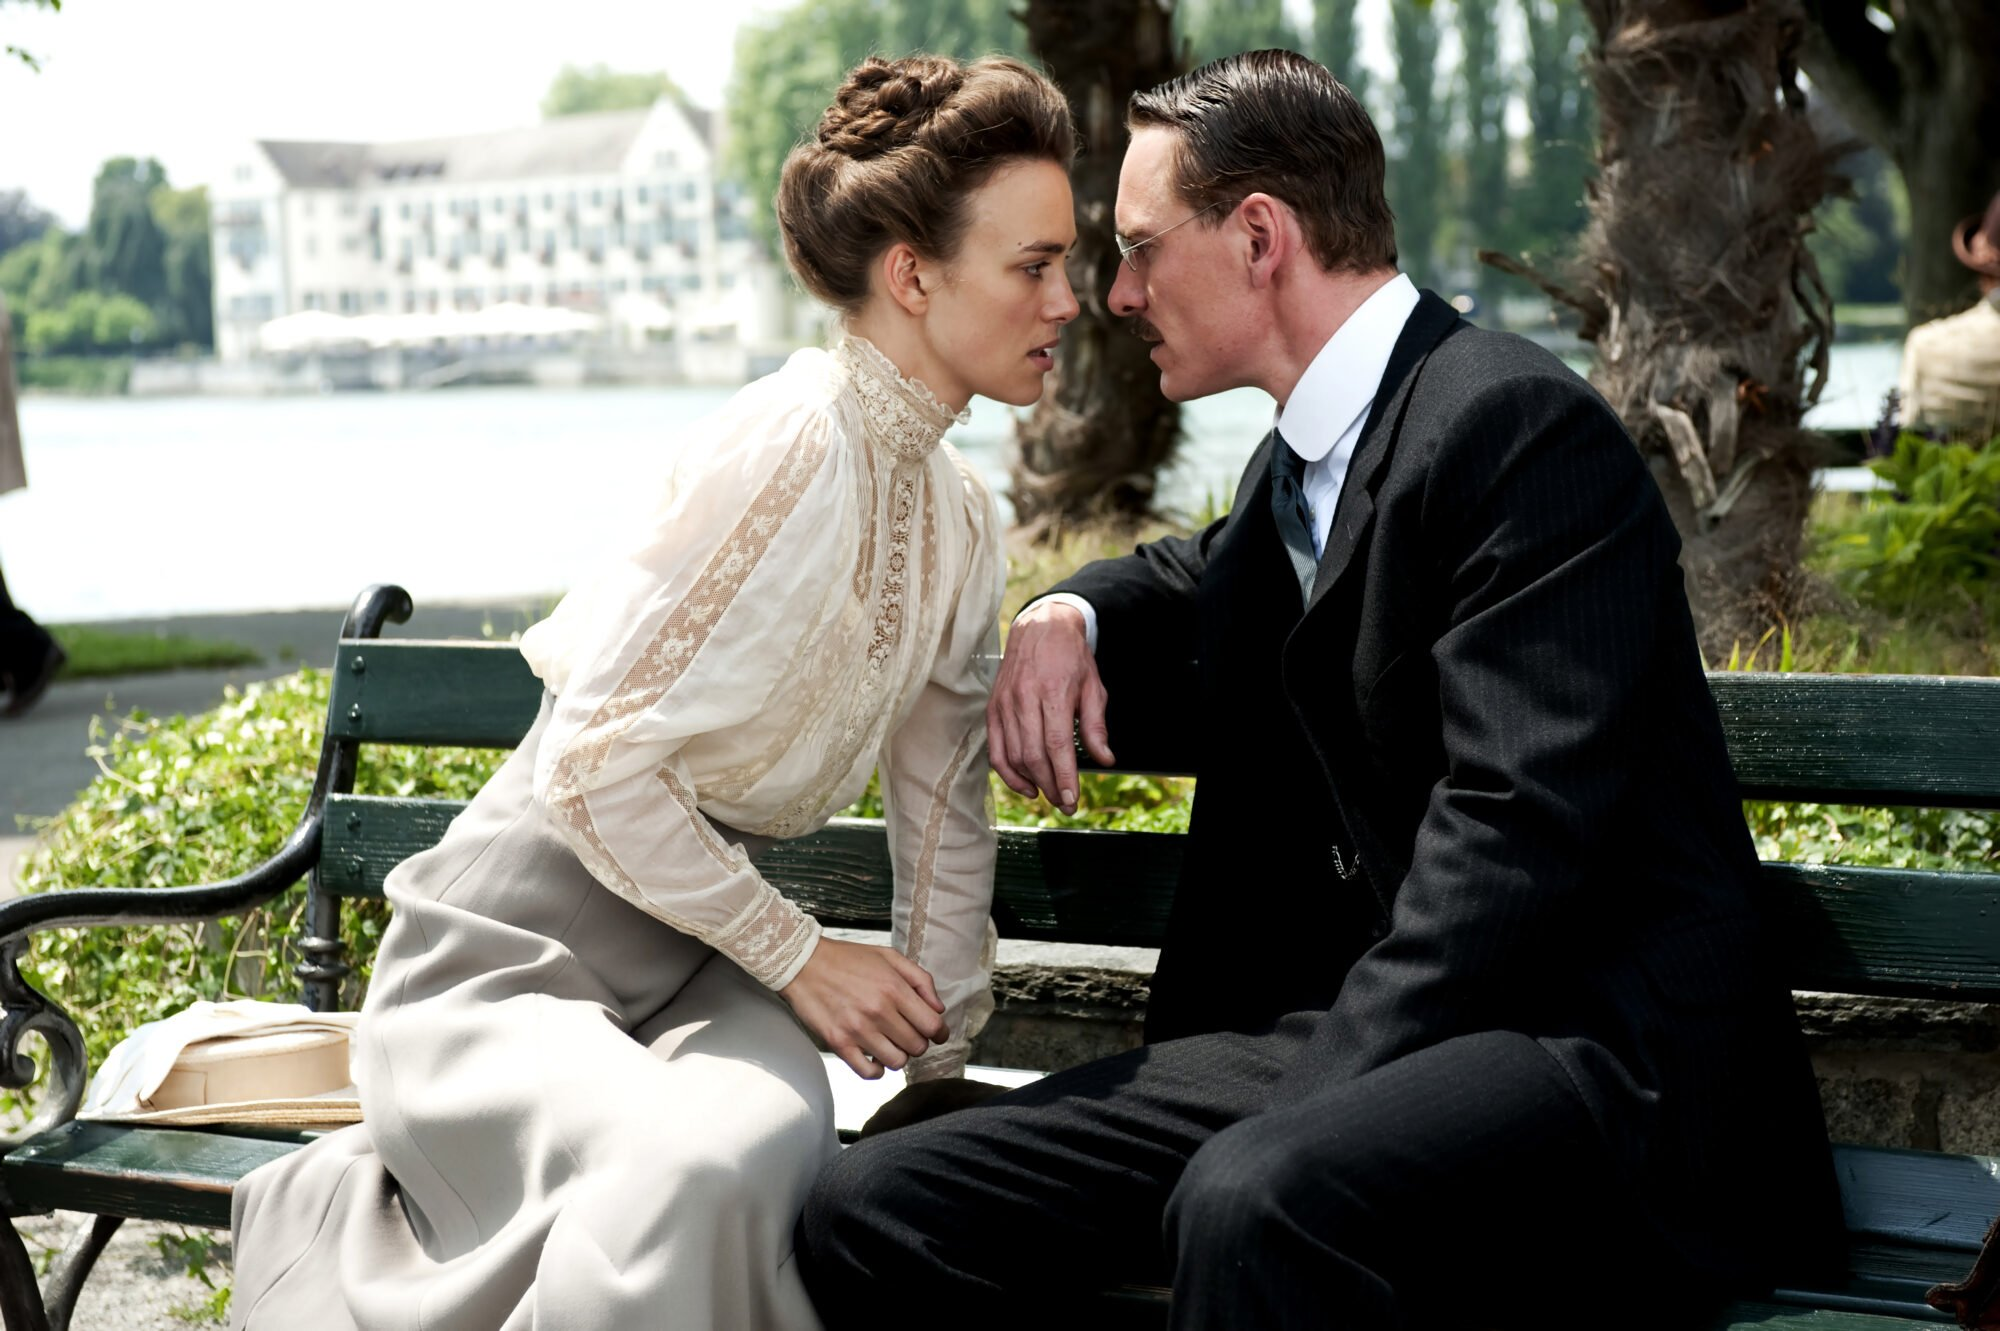 New York Film Festival 2011: A Dangerous Method